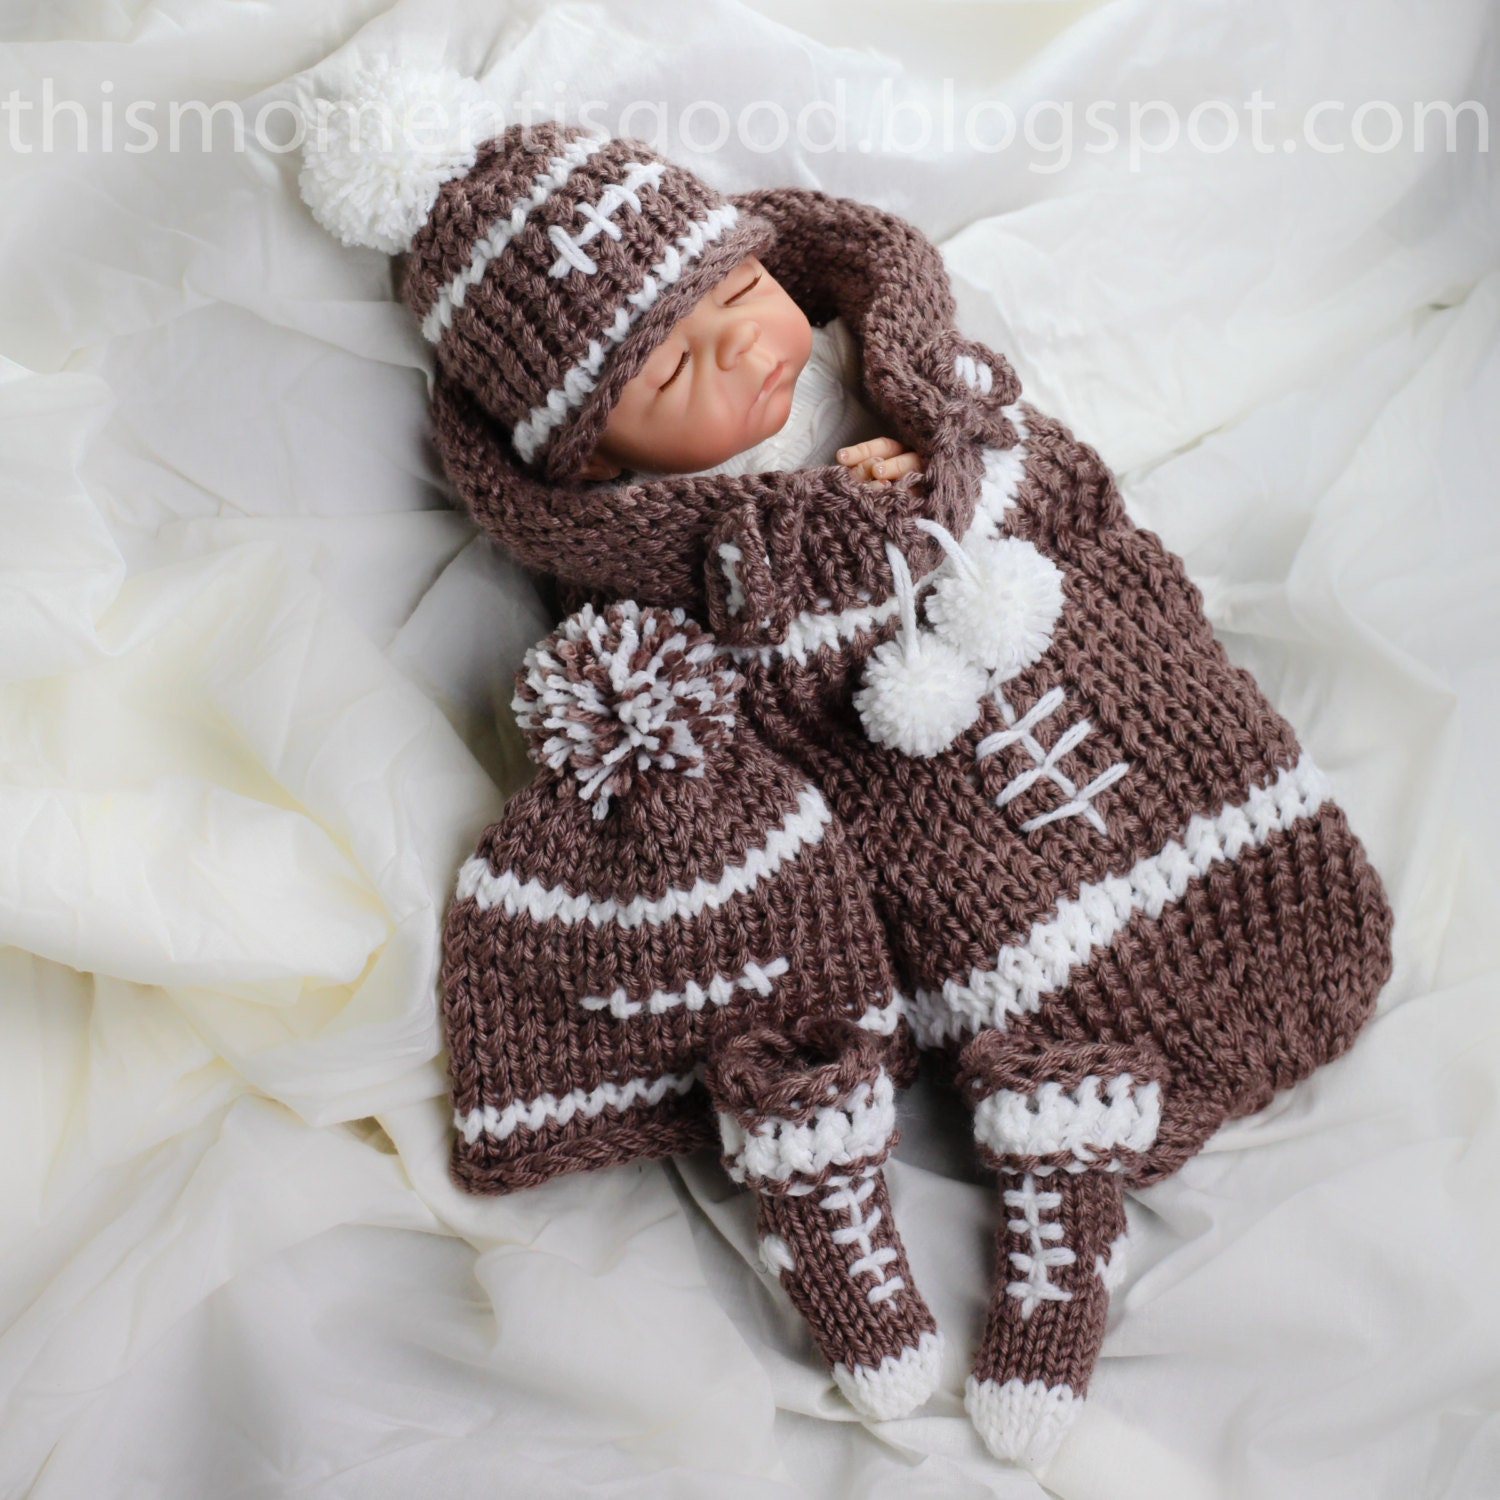 Loom Knitting Patterns For Babies : Loom Knit newborn cocoon PATTERN loom knit hat pattern loom